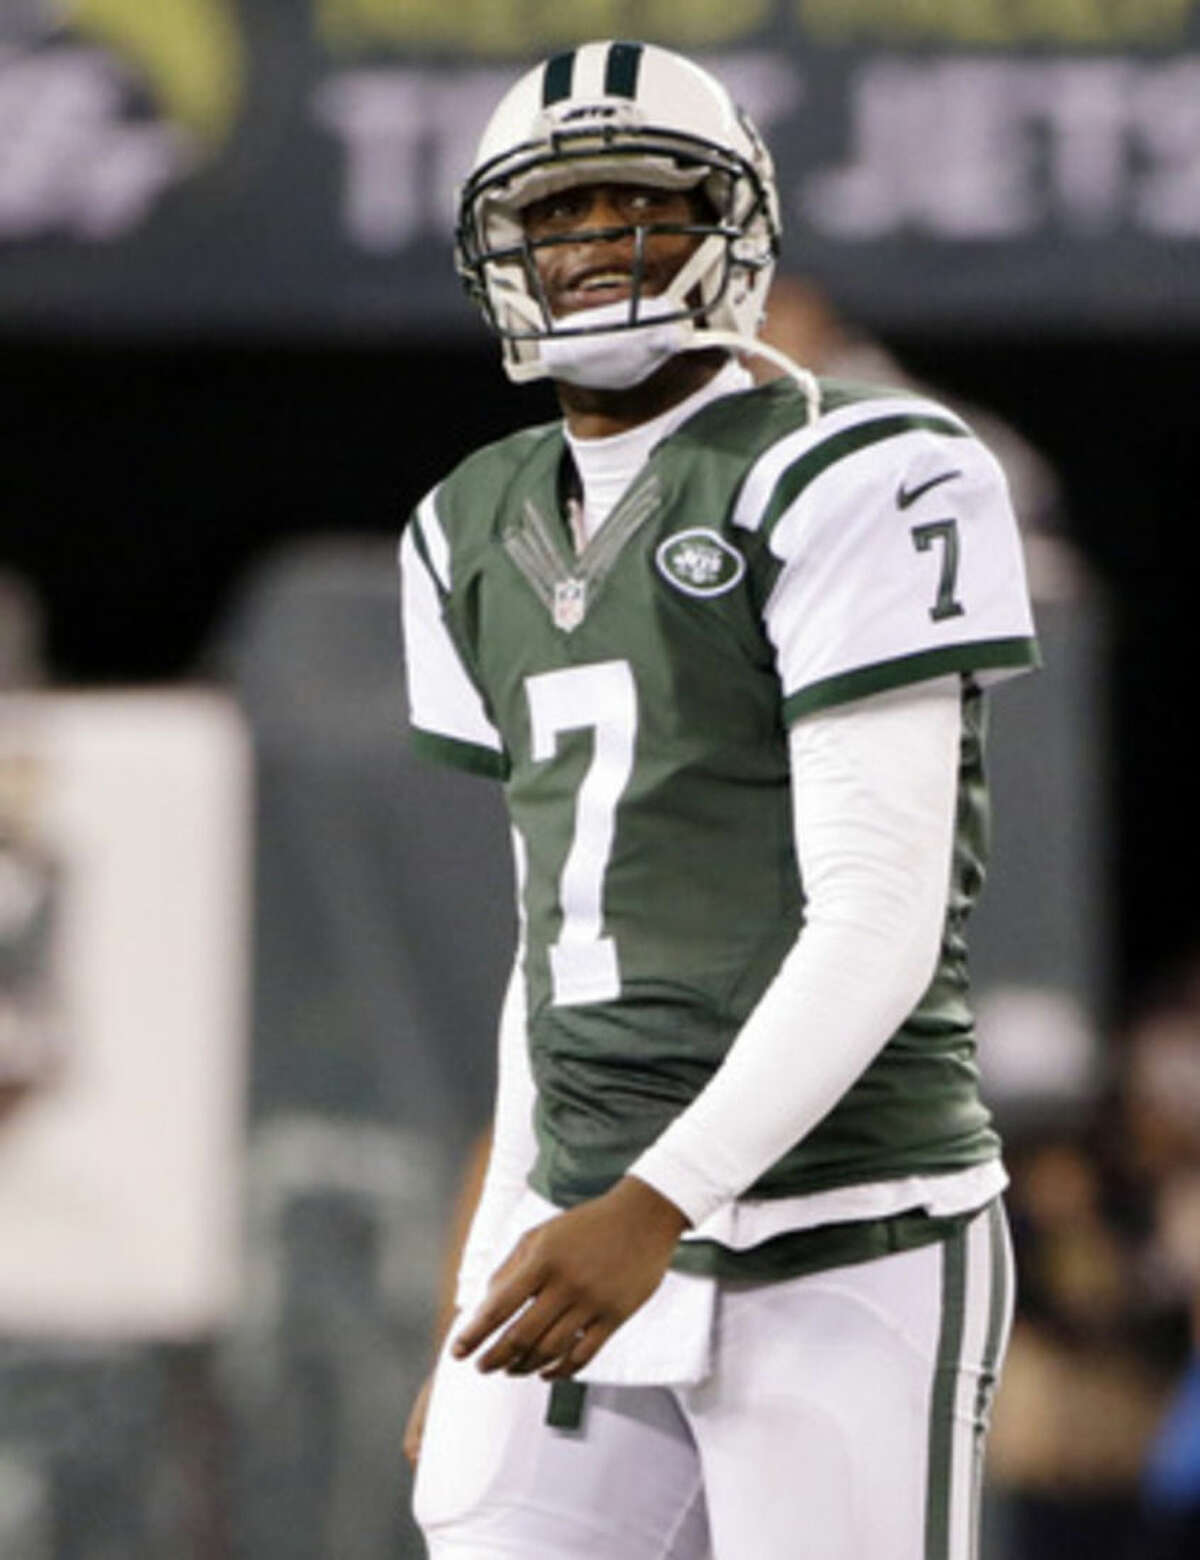 New York Jets quarterback Geno Smith (7) checks the scoreboard between plays against the Miami Dolphins during the second quarter of an NFL football game, Monday, Dec. 1, 2014, in East Rutherford, N.J. (AP Photo/Julio Cortez)